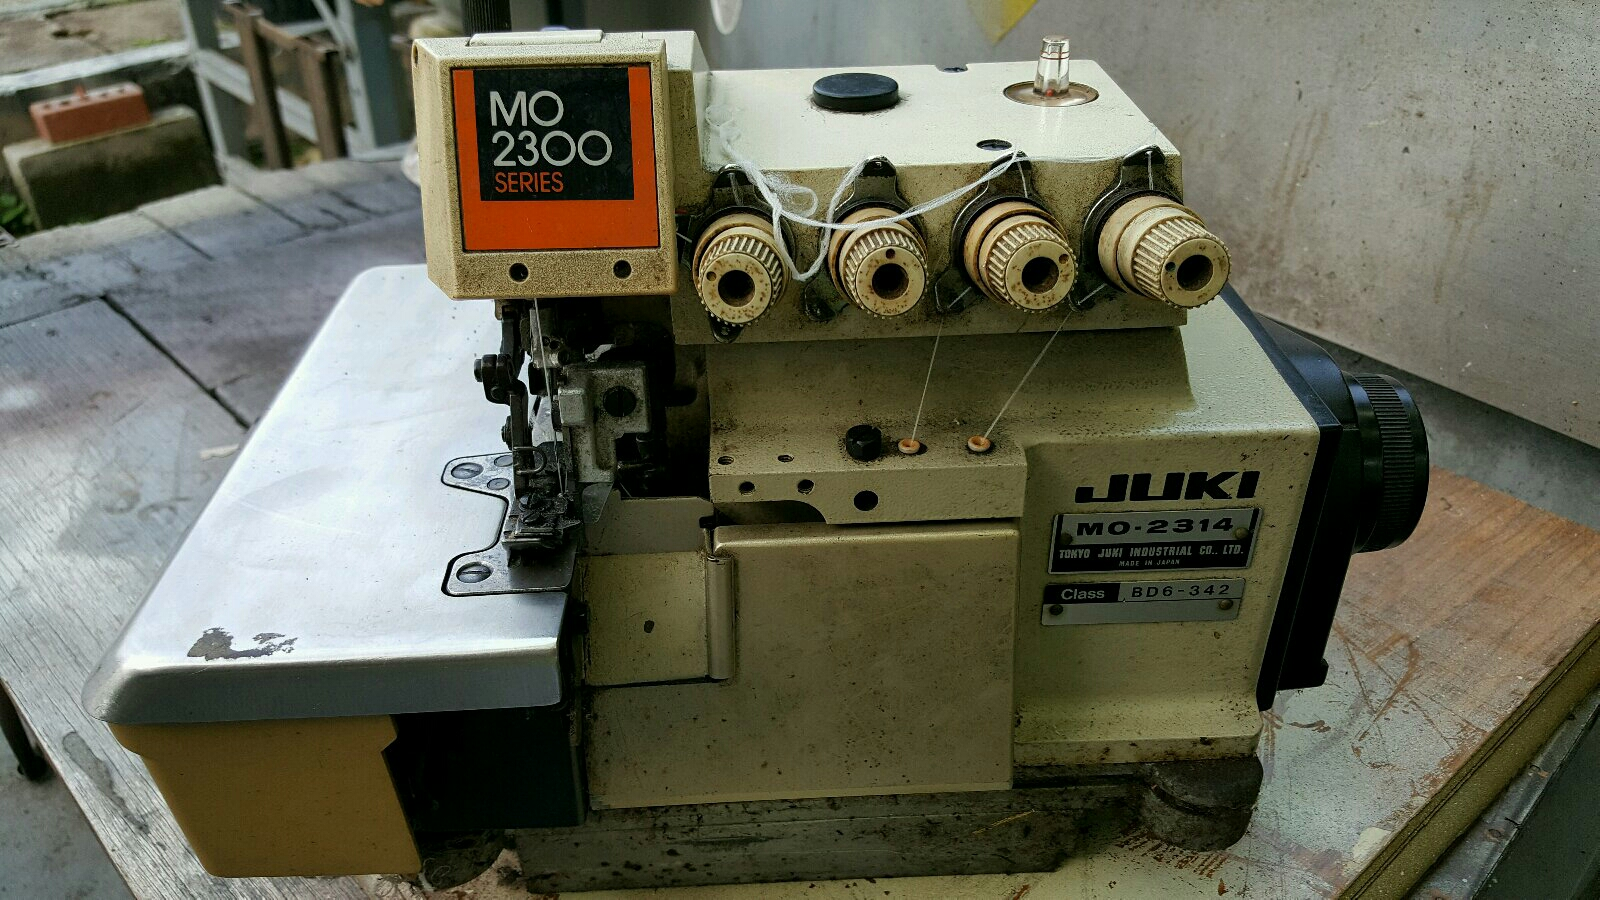 Juki Super Overlock sewing machine